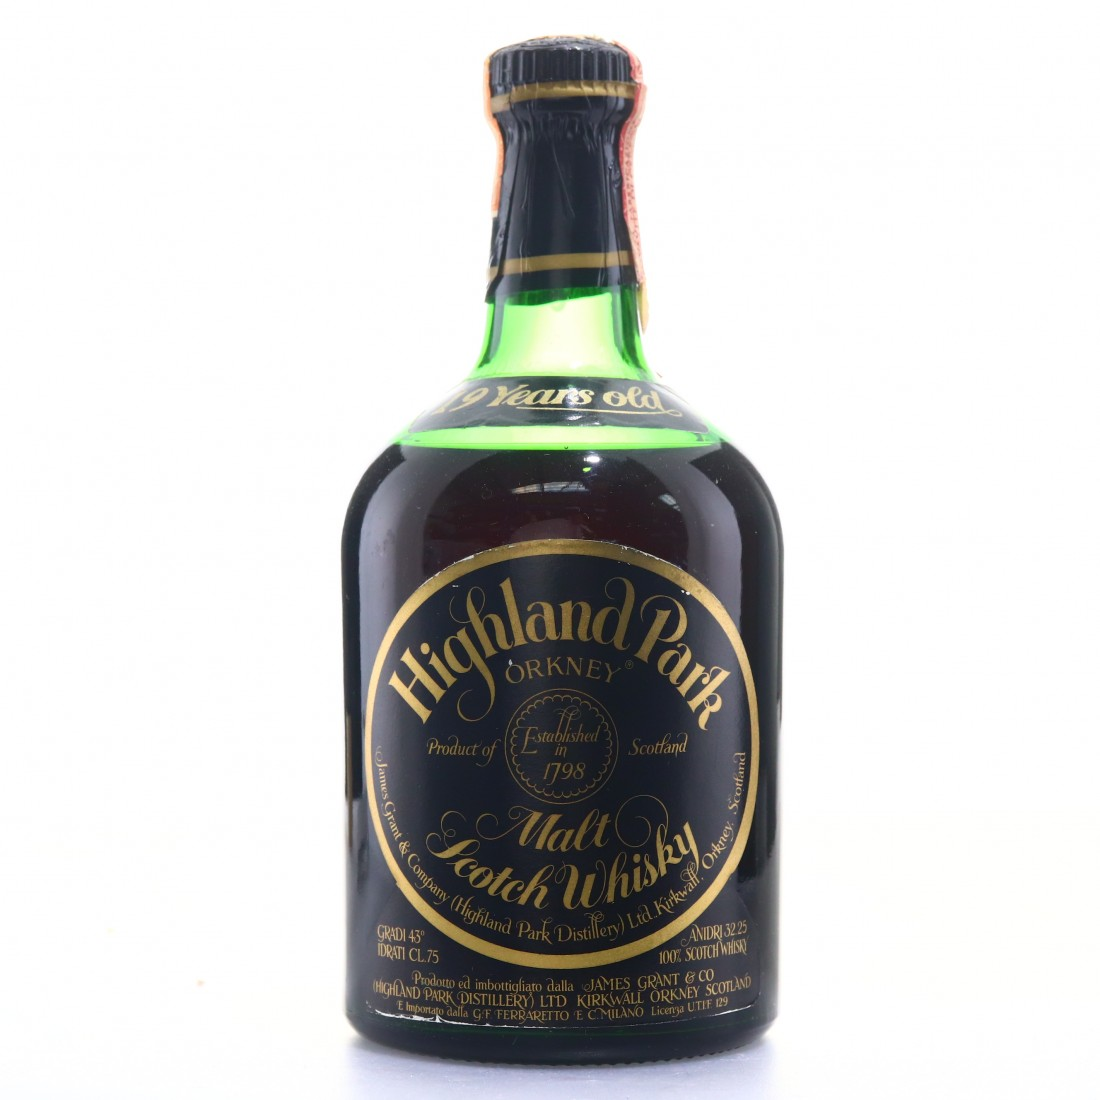 Highland Park 19 Year Old 1979-1980 / Ferraretto